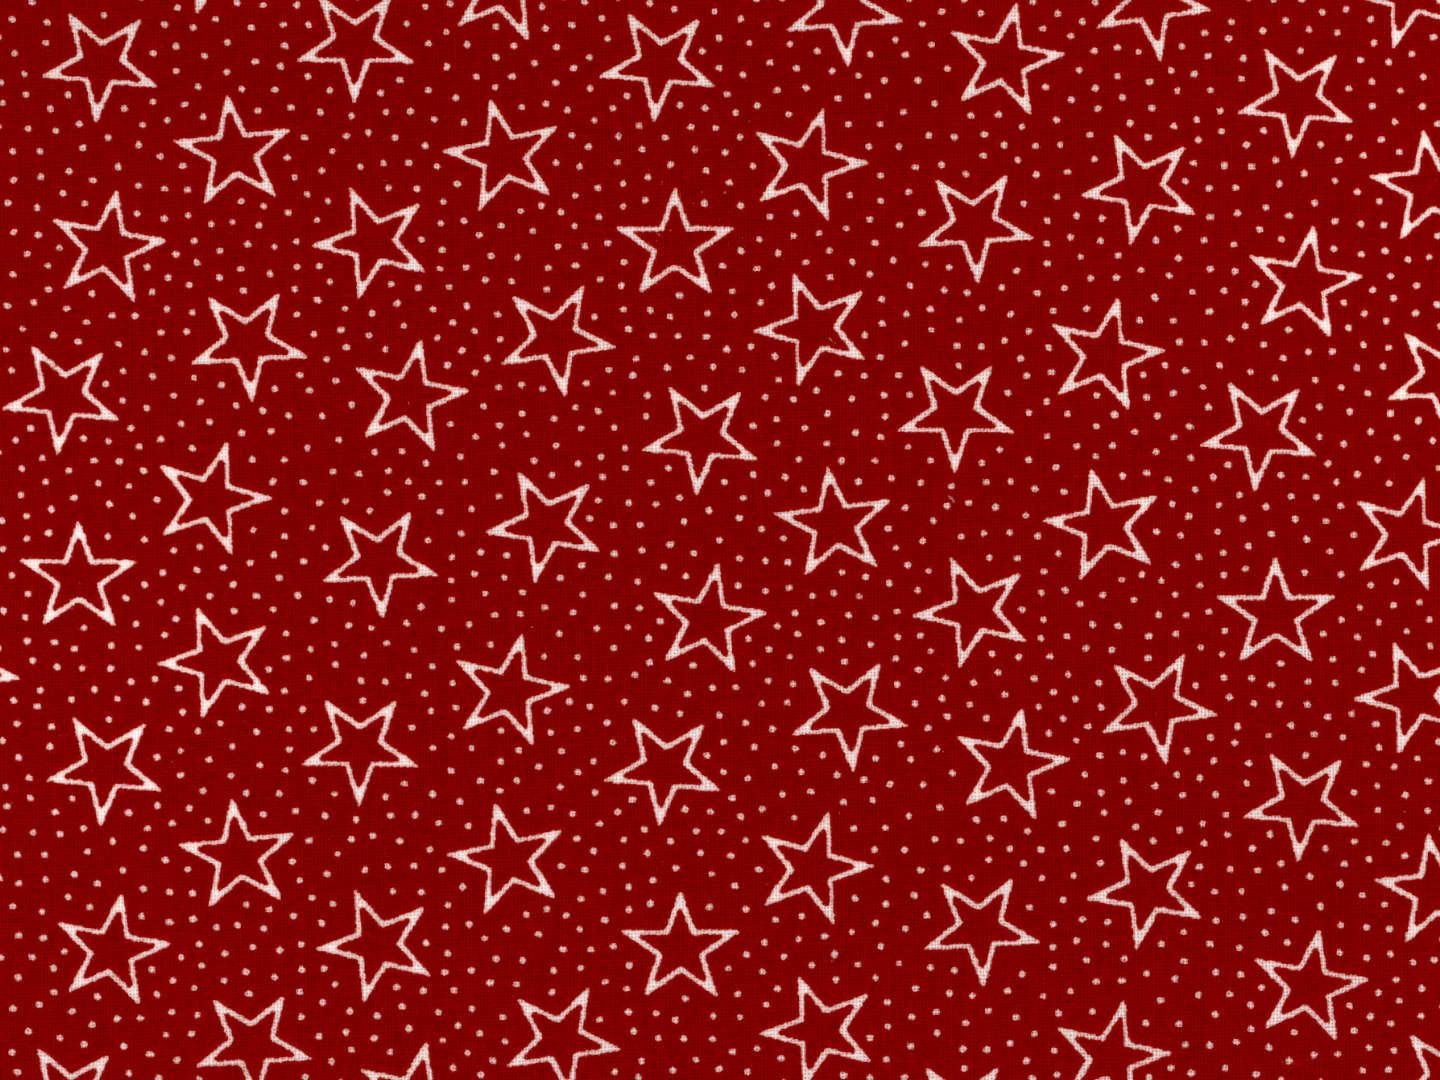 108 Dotted stars on Red